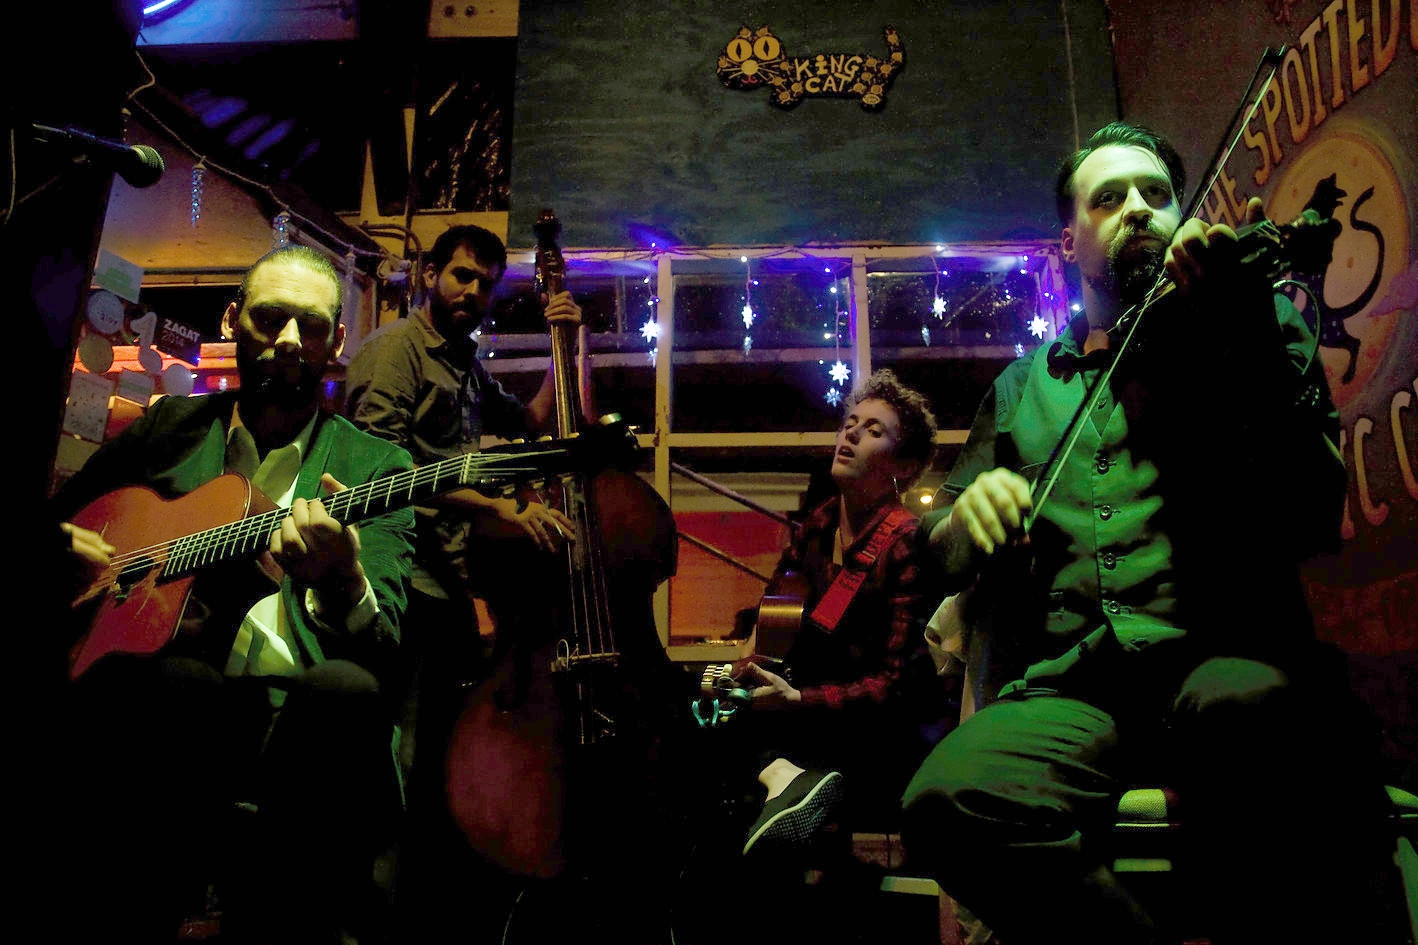 Showarama_Gypsy_Jazz_Magnolia_Entertainment_New_Orleans_NOLA_Music_Booking_Talent_Agency_guitar_Django_Reinhardt_Stephan_Grapelli_Russell_Welch